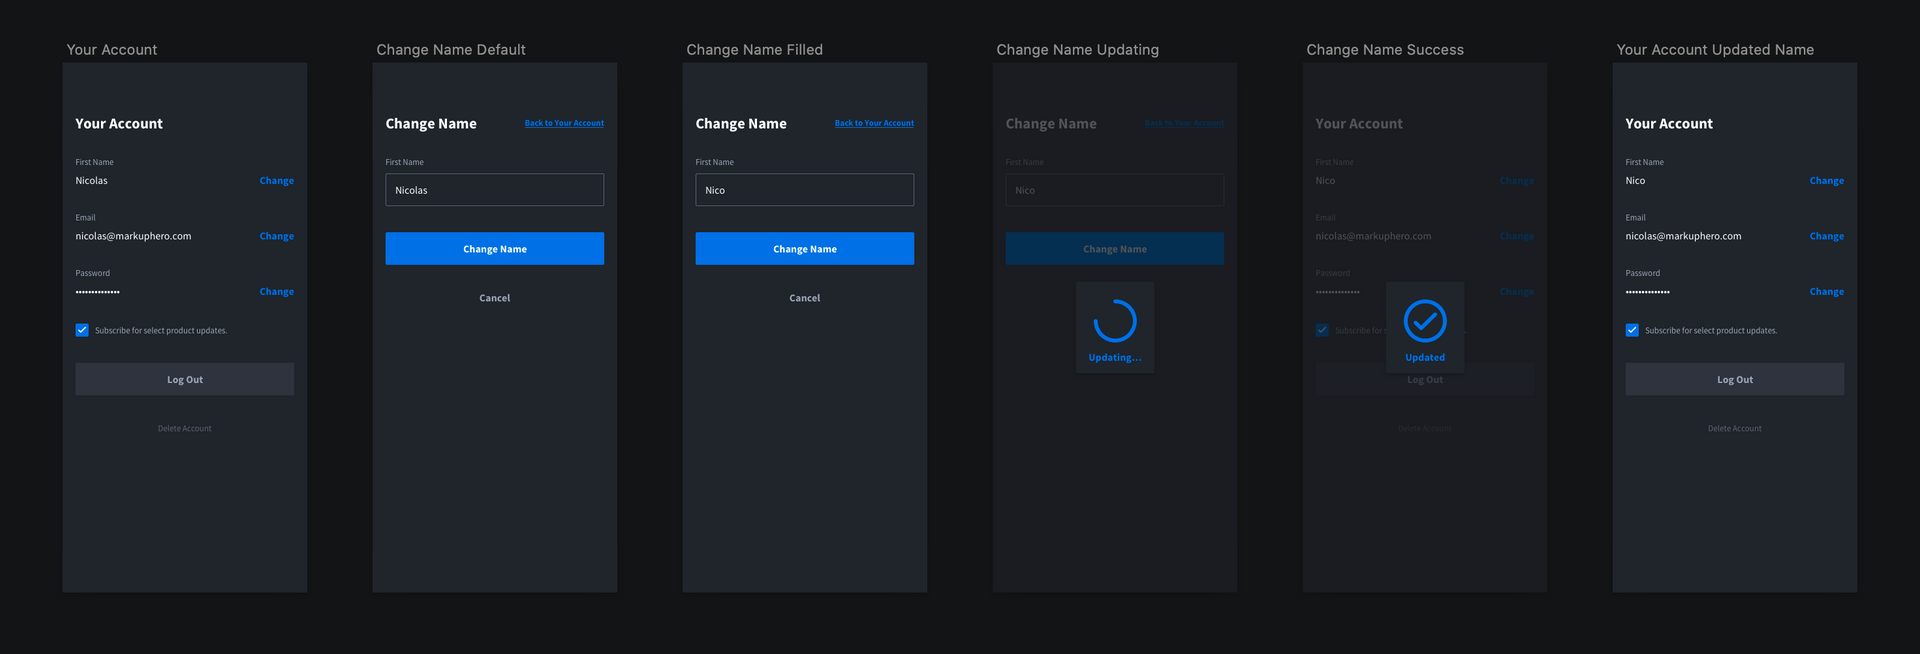 User management: change your name flow / design from Markup Hero